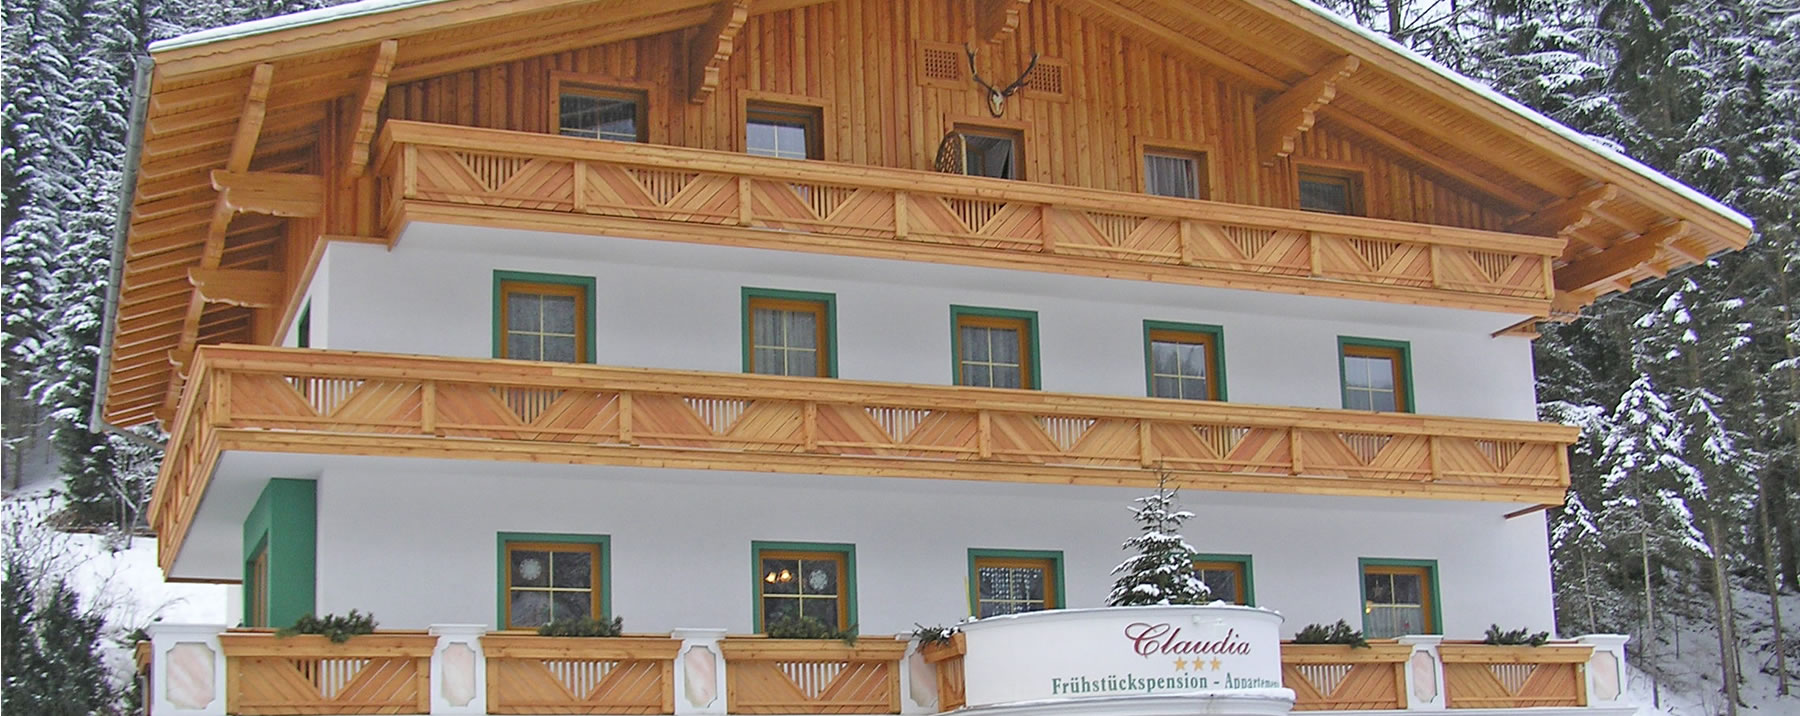 Pension Claudia, Skiurlaub in Ski amadé